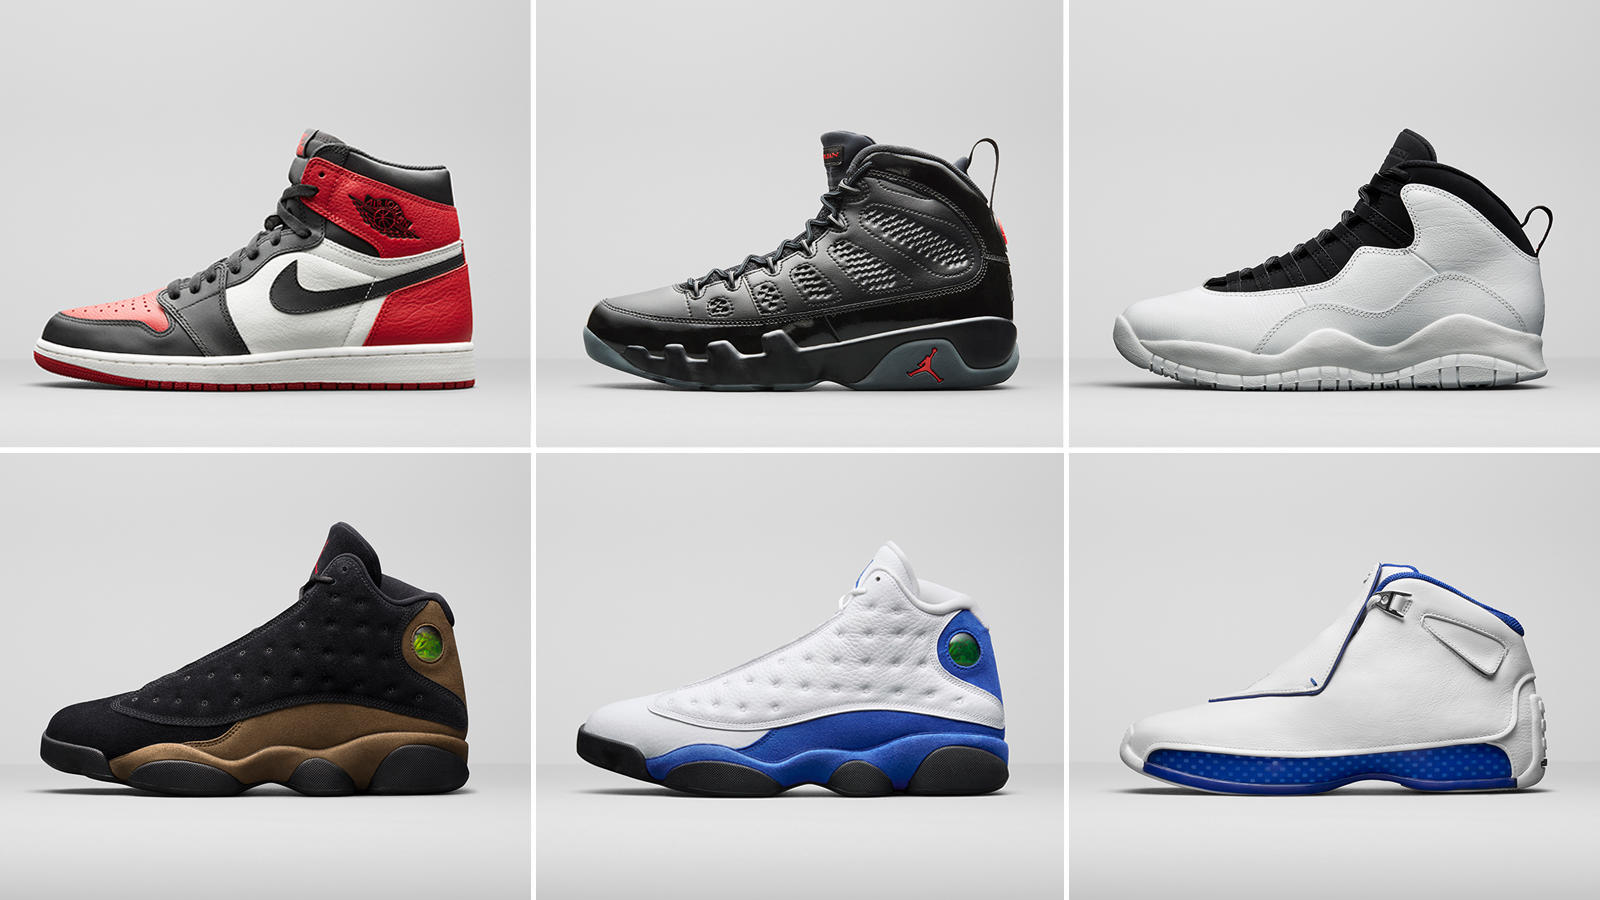 f751b046764c Jordan Brand Unveils Select Styles for the Spring Season - Nike News